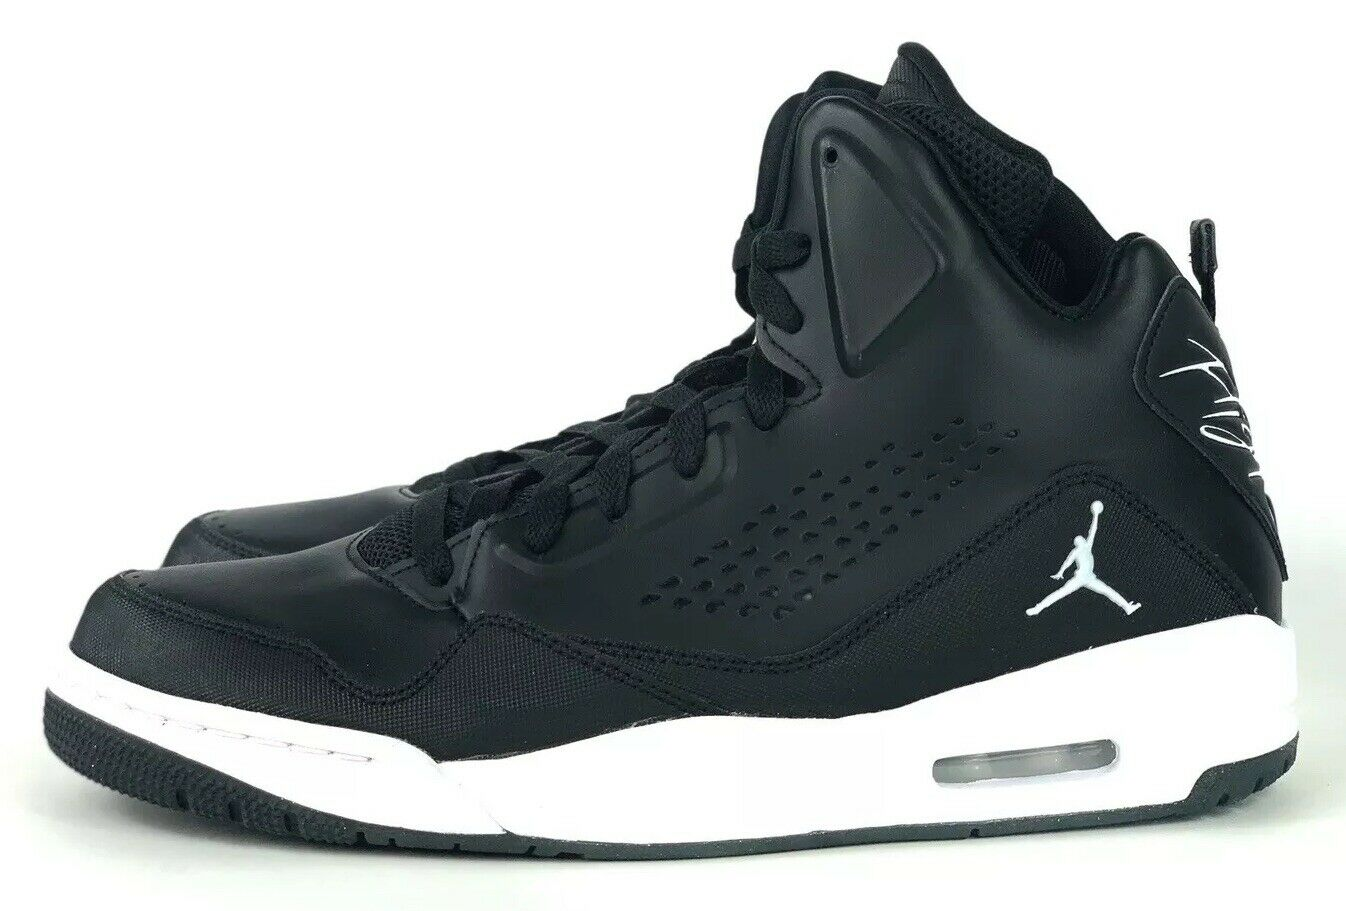 Nike Air Jordan SC-3 Basketball shoes Black White 629877-008 Sz 10